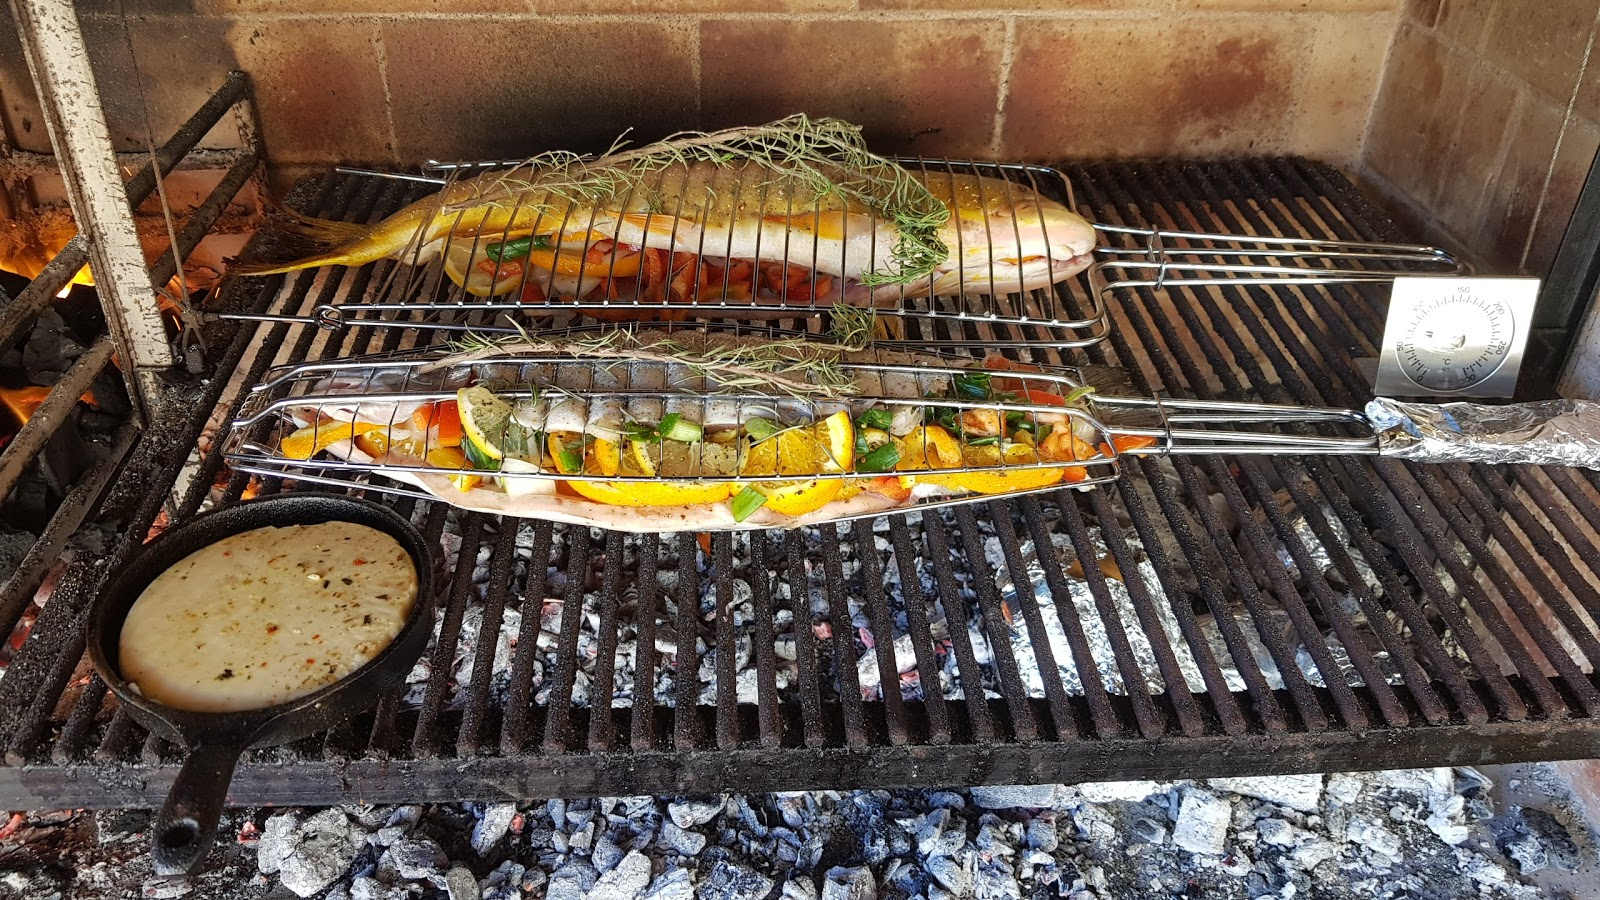 Parrilla with fish